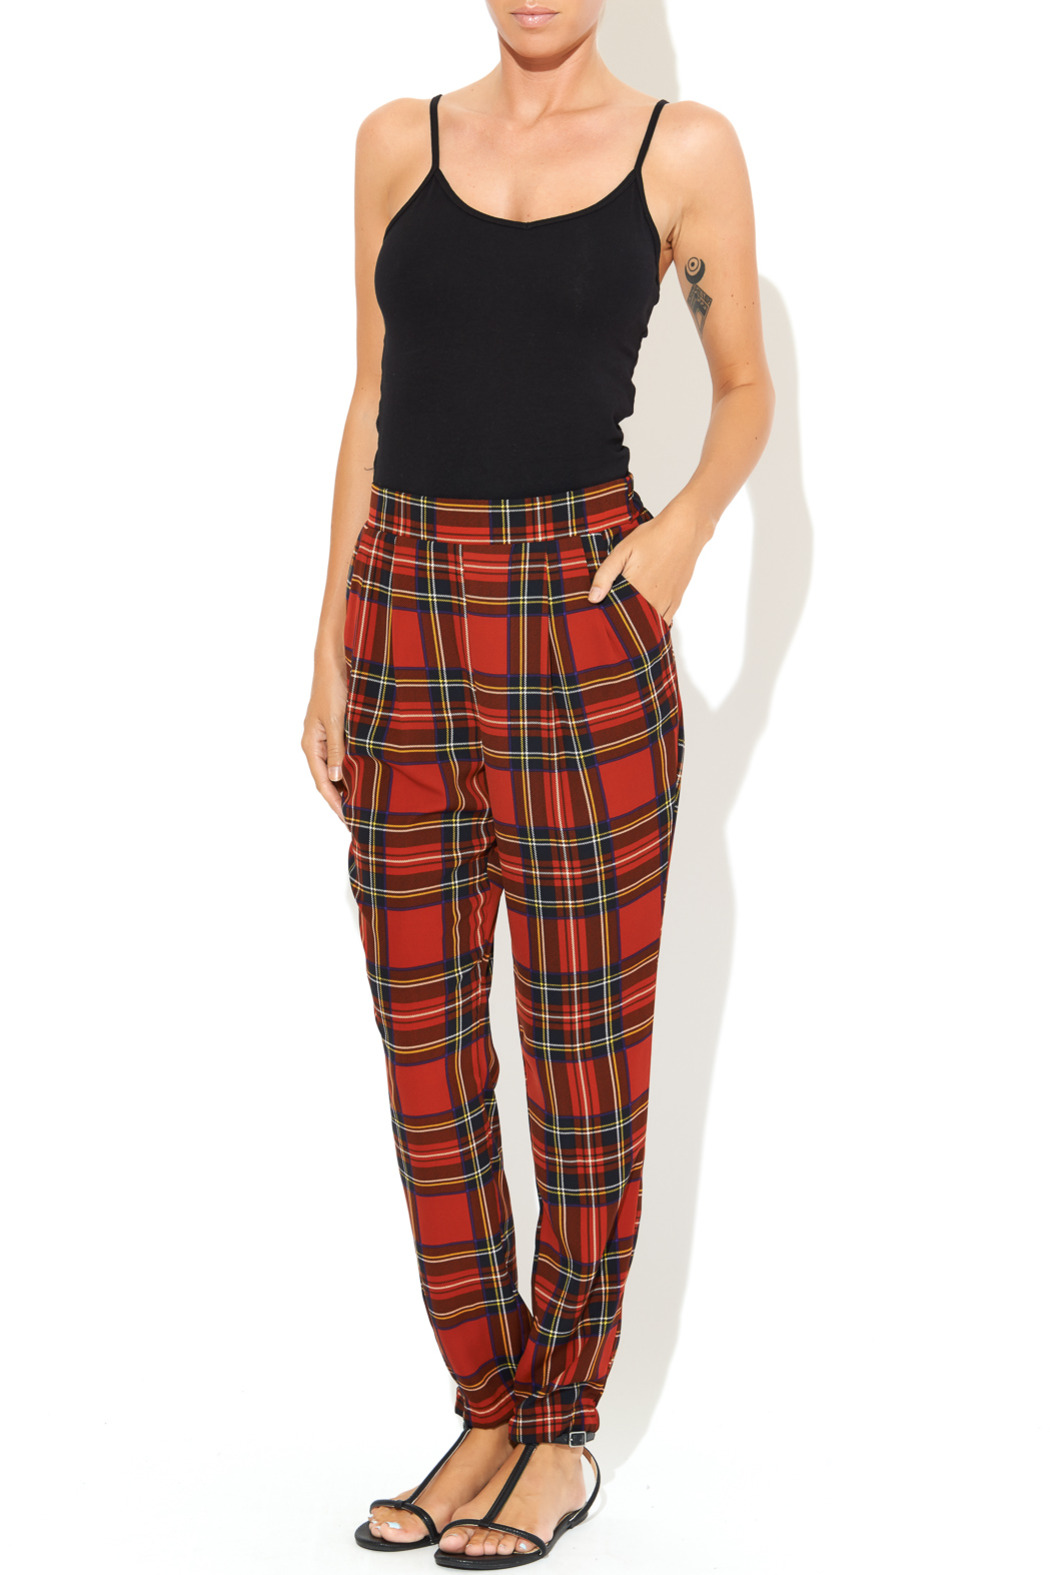 See You Monday Red Tartan Print Pants - Front Full Image